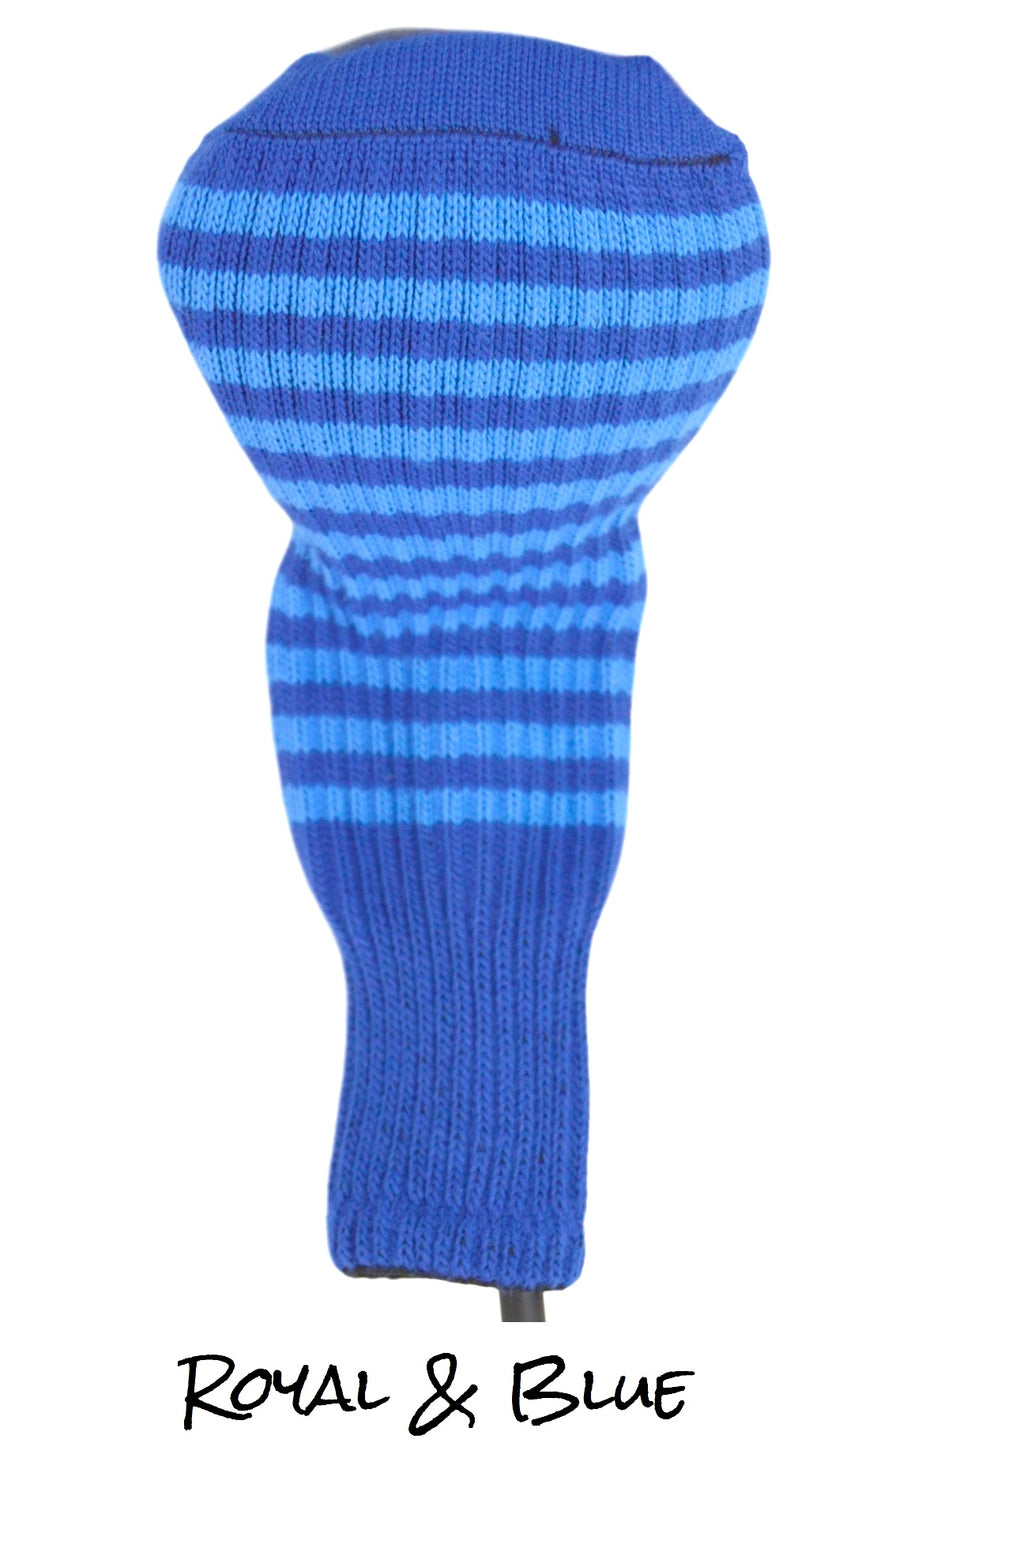 Royal Blue and Blue Club Sock Golf Headcover